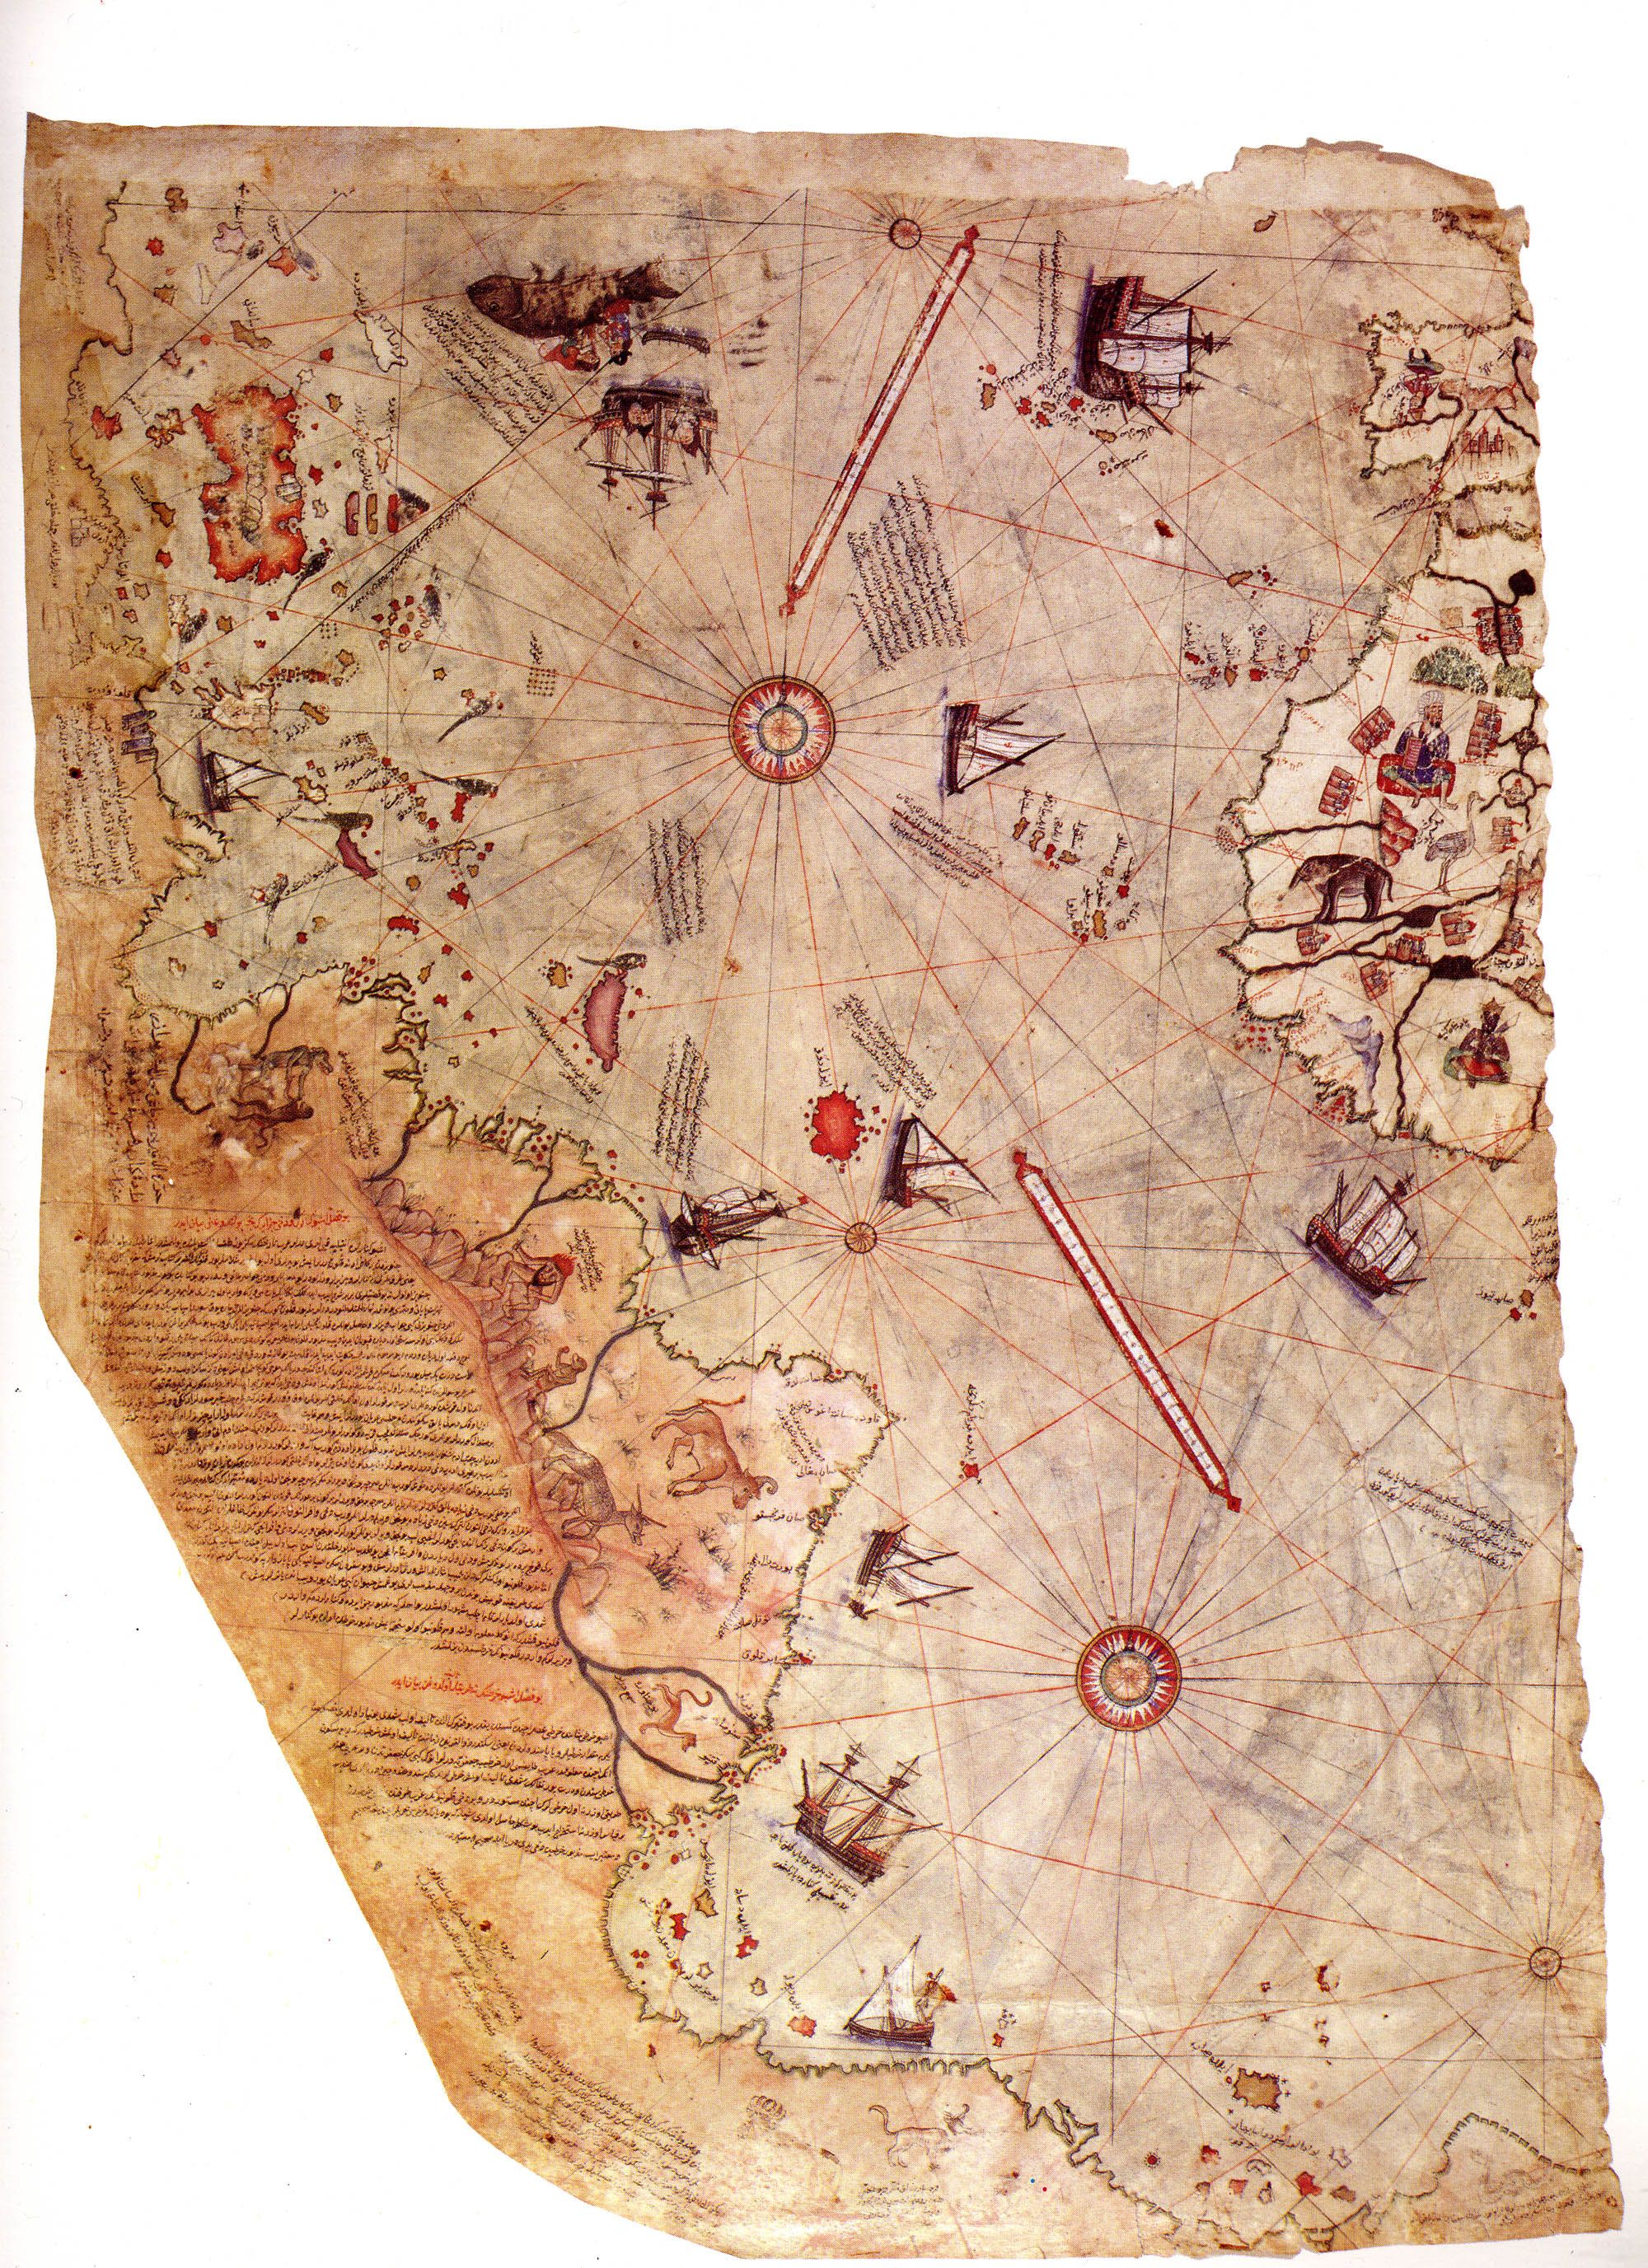 Surviving fragment of the first world map of ottoman admiral piri surviving fragment of the first world map of ottoman admiral piri reis drawn in 1513 gumiabroncs Images